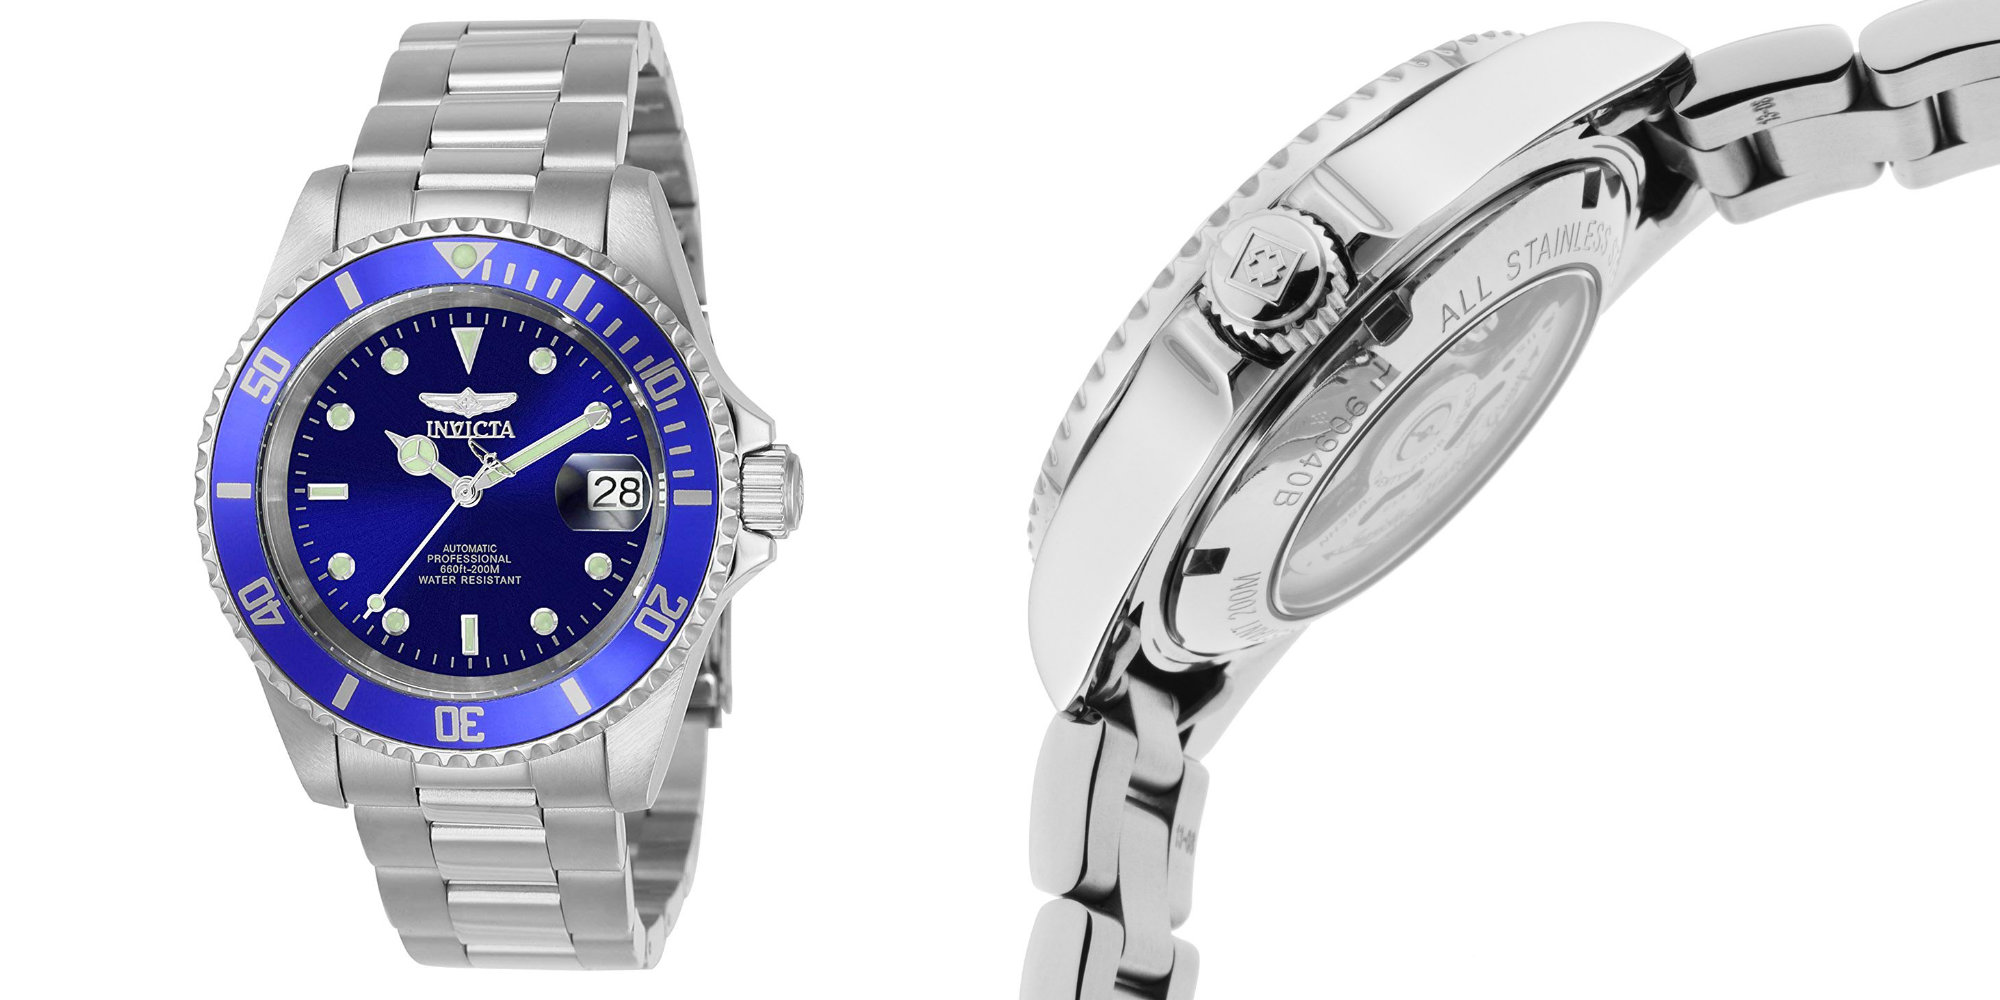 Go analog in style w/ Invicta's Stainless Steel Link Bracelet Watch: $54 shipped (Save $25)